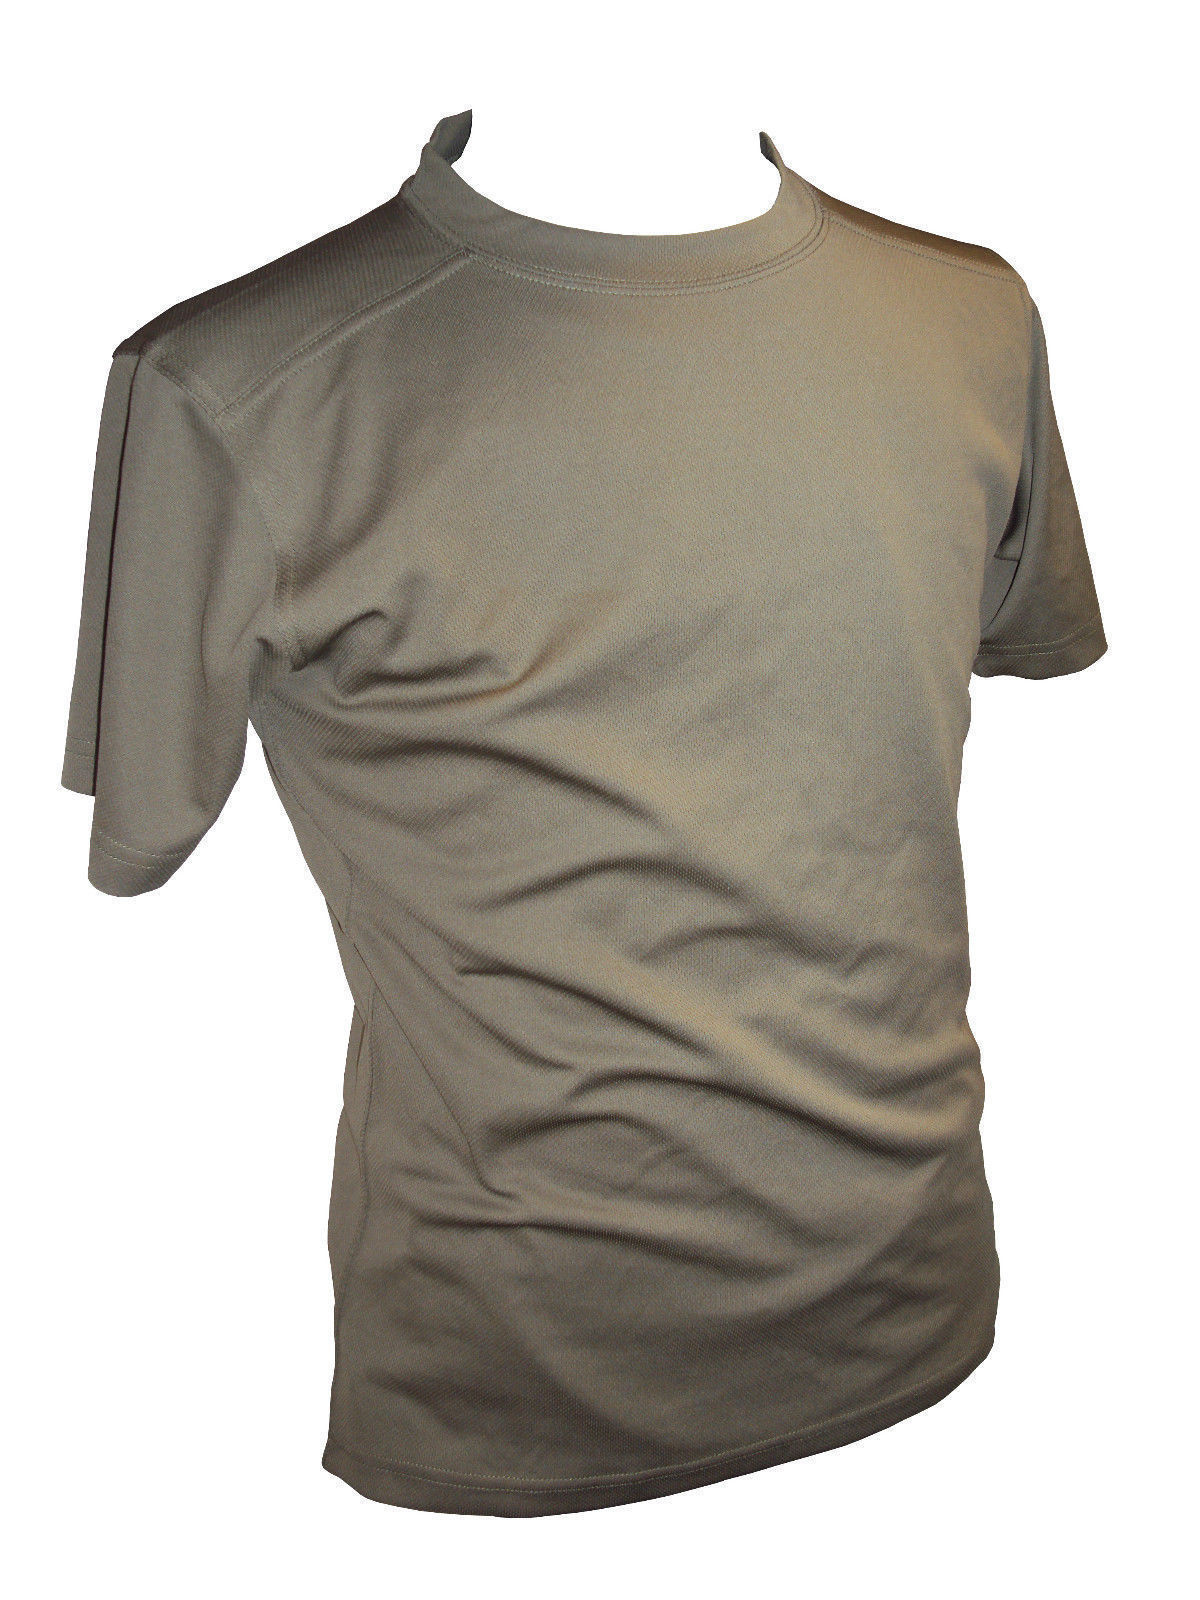 Lot 11 - PACK OF 10 - ANTI STATIC T SHIRTS - GRADE 1 - MIX OF SIZES